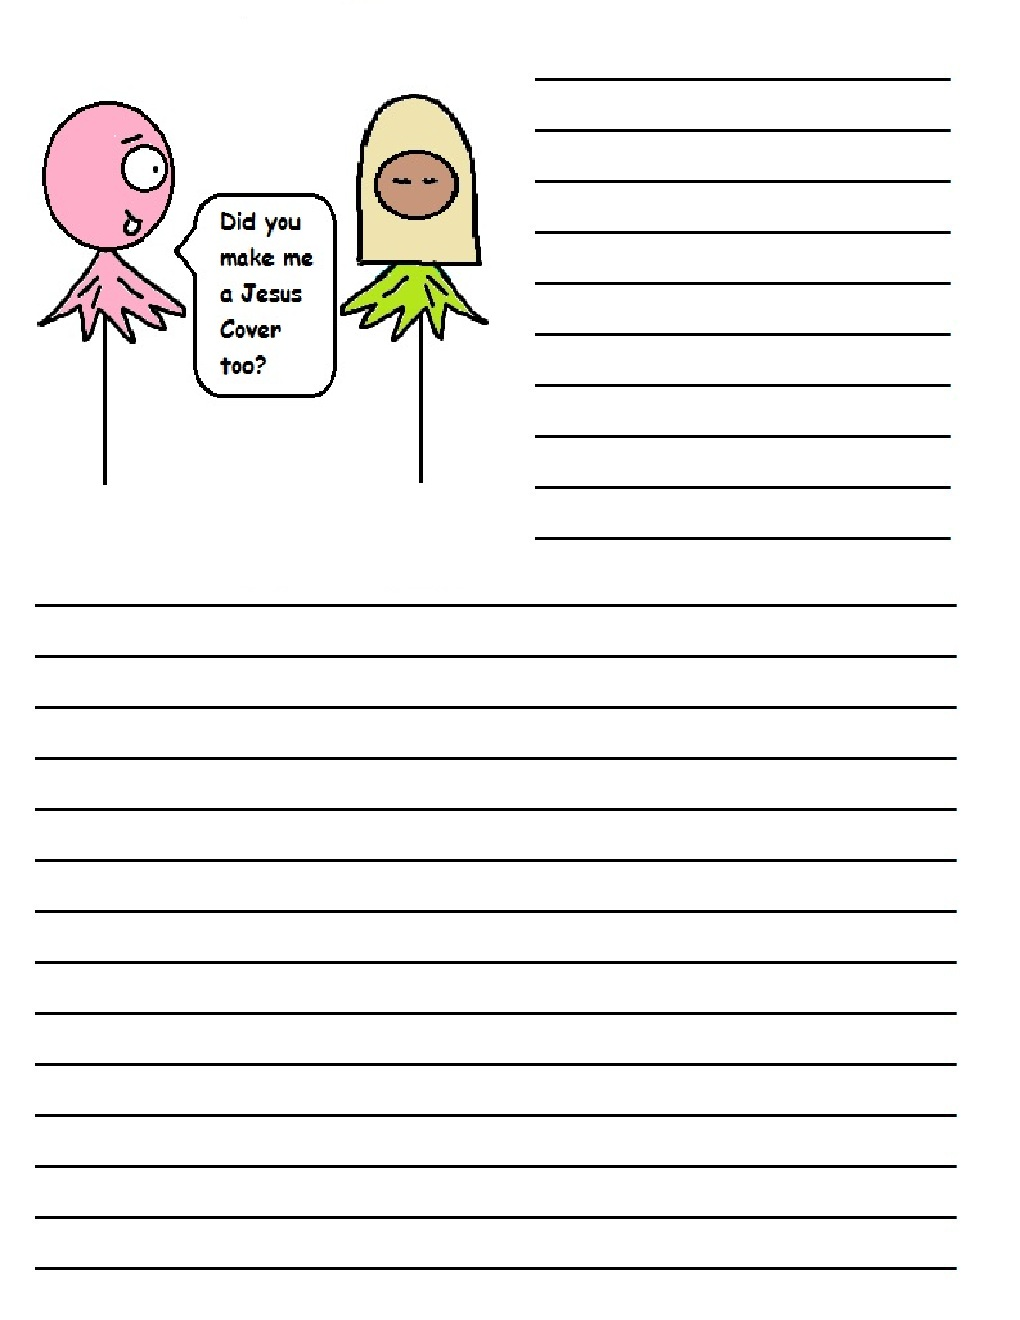 printed writing paper